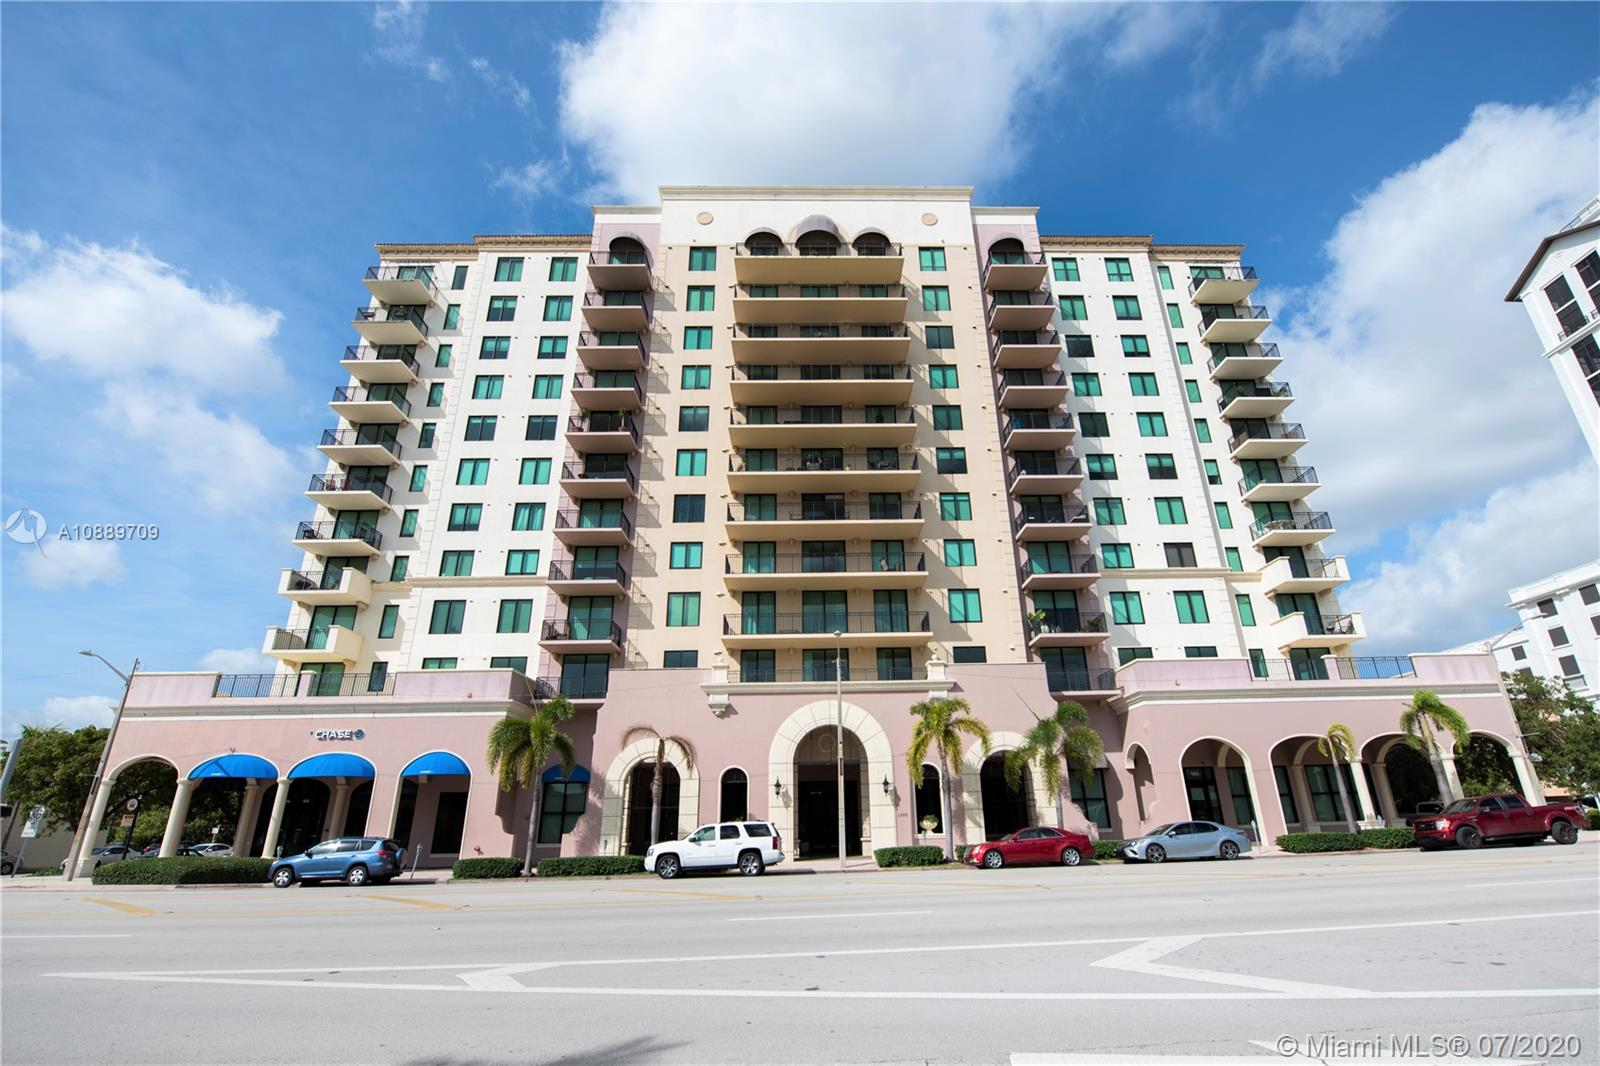 Spacious condo at the heart of Coral Gables. Open balcony with incredible city views.It has wood cabinets, stainless stain appliances, impact windows, build in walking closets. Great amenities including, pool, gym and lounge room. 24 hrs. concierge. Prime location; close to airport and major expressways, walking distance to Miracle Mile, restaurants, shops and much more. A must see!